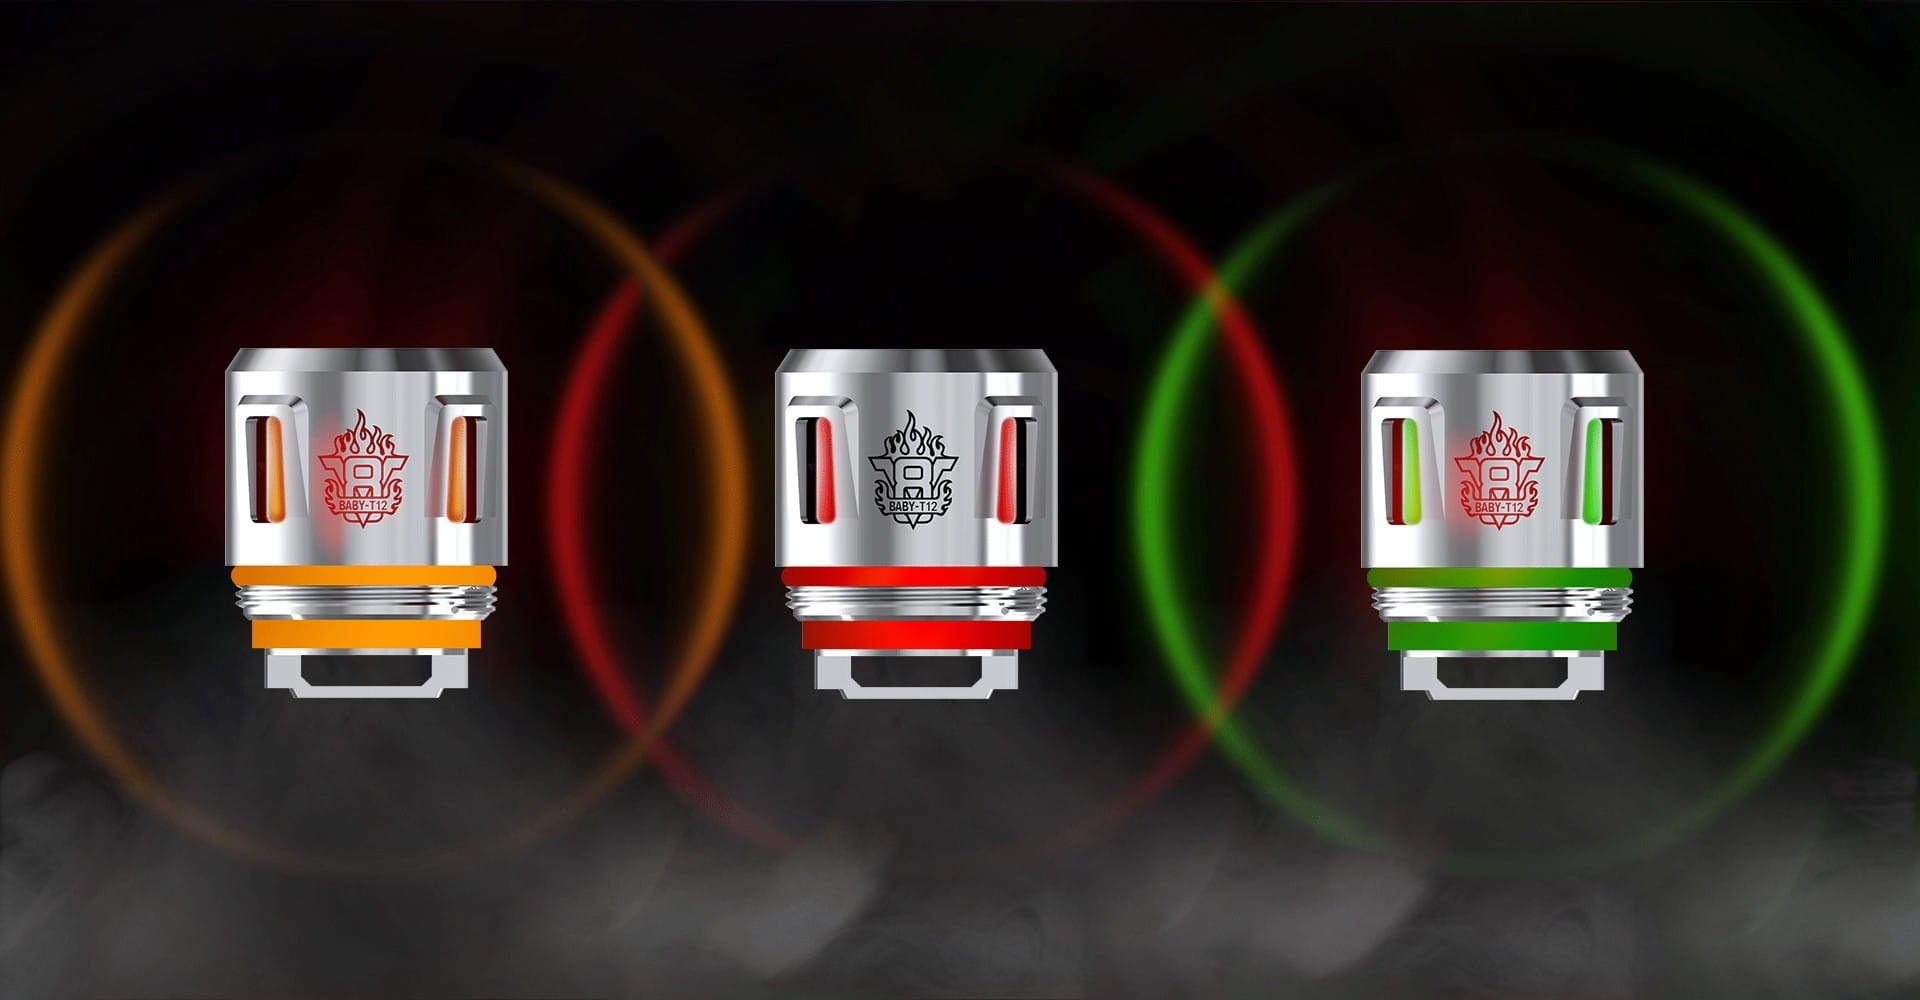 SMOK V8 Baby T12 LED Light Coils (5 Pack) - Available from Mighty Vape